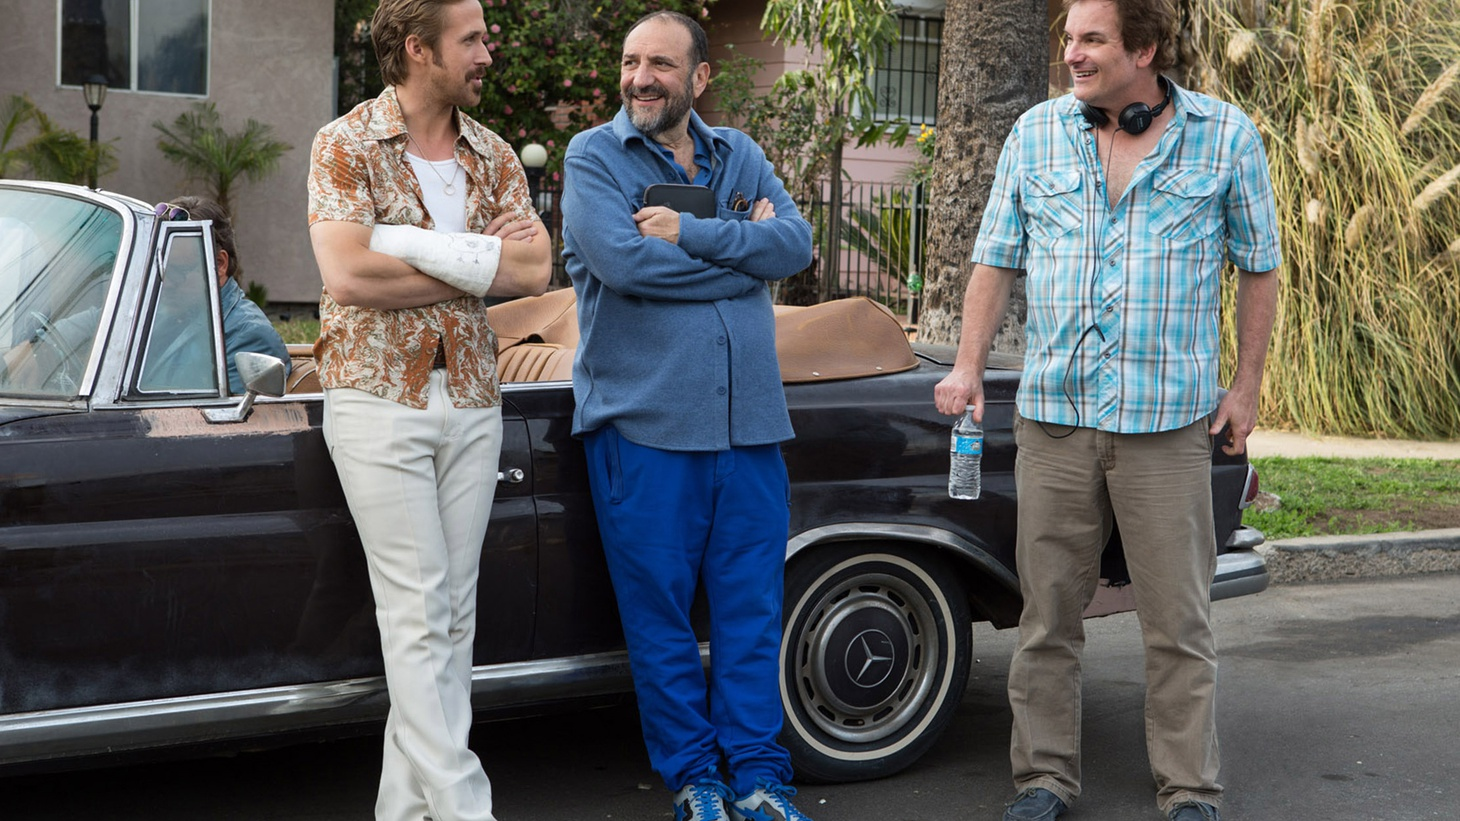 """After 13 years of various attempts at telling the """"nice guys"""" story, director Shane Black joins Elvis Mitchell to talk about finding the right medium for the buddy cop film The Nice Guys."""